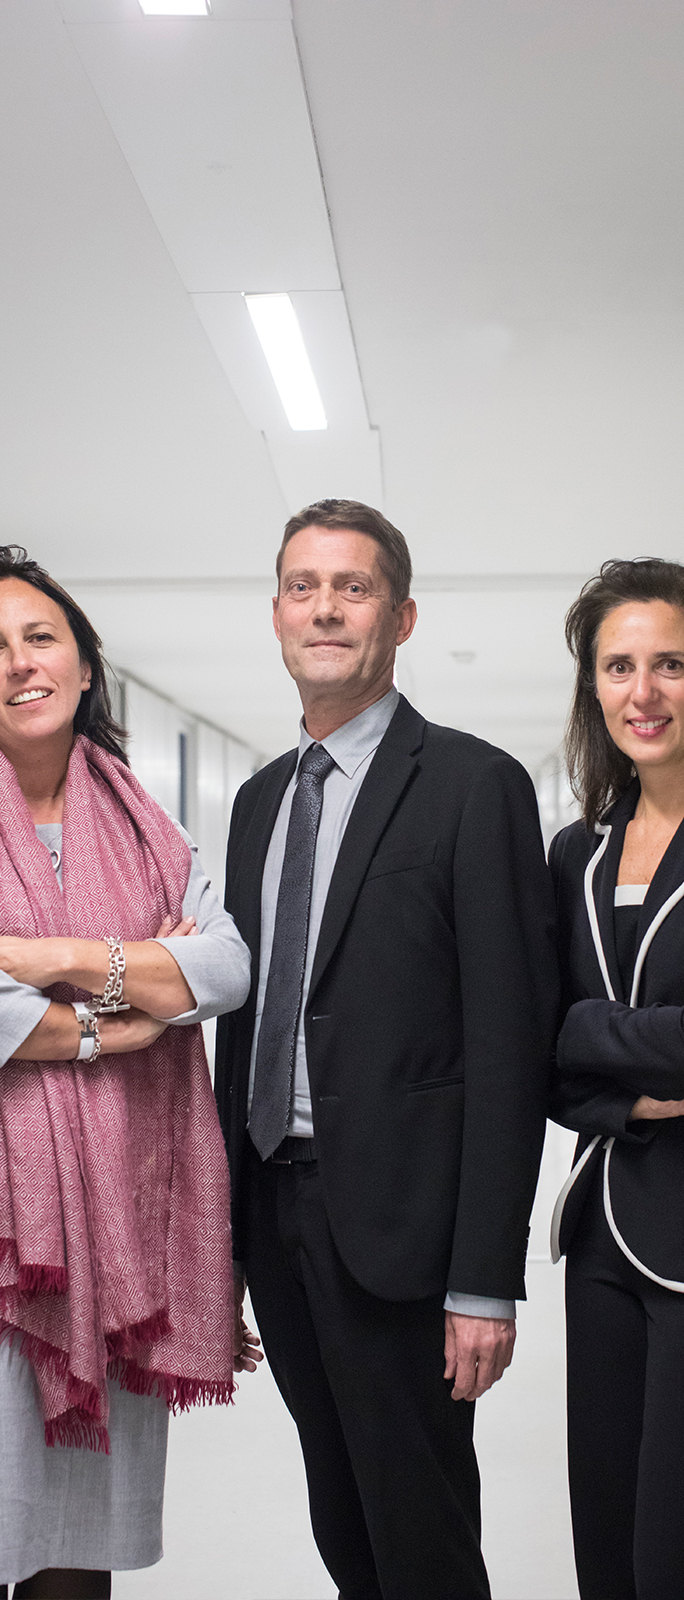 Sonia Frey, Paul Hautekiet, Isabel Carrion